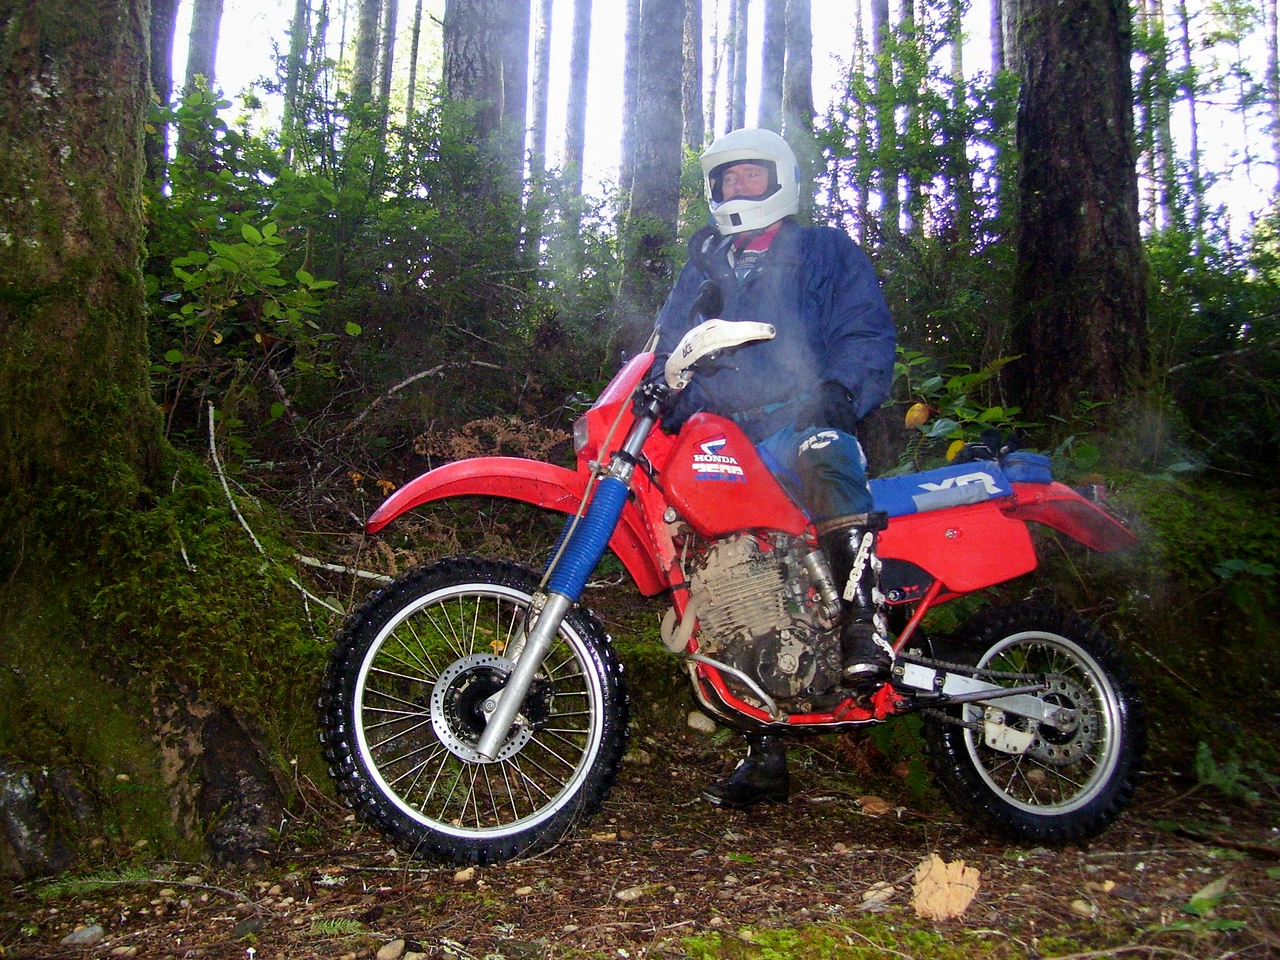 Wild Bill and his XR 350. These Older XRs work really good in the woods, with their shorter wheel base and quick steering and lower seat height.